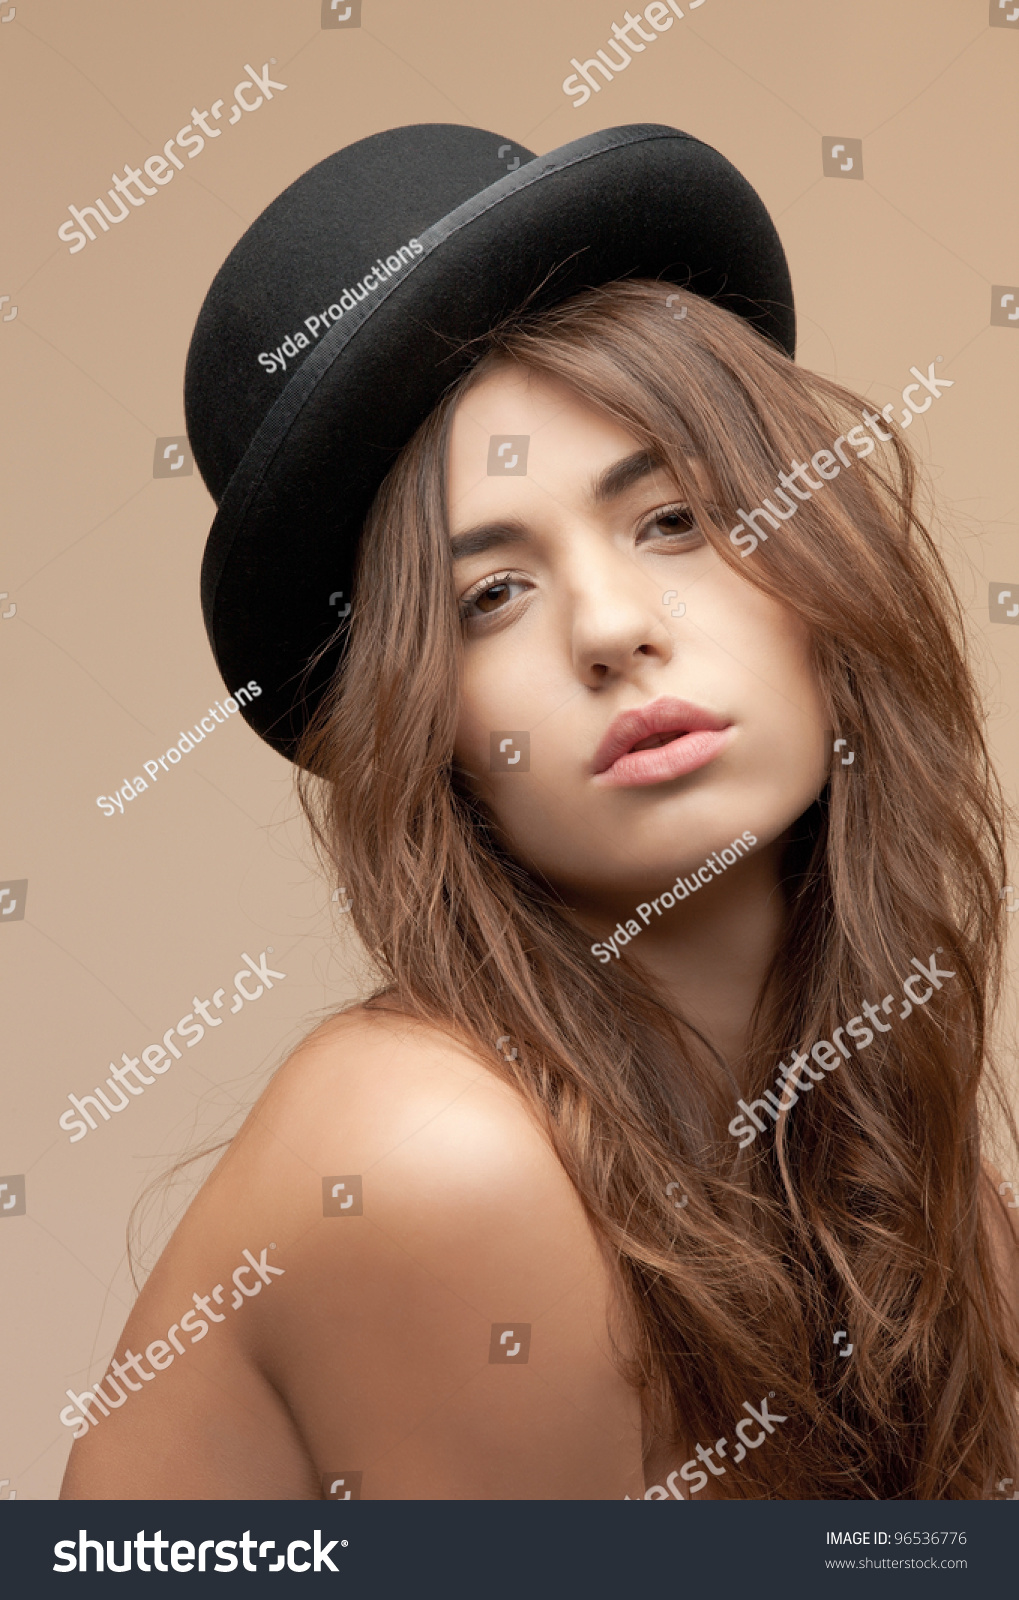 d4ebb34b49d Picture Beautiful Topless Woman Bowler Hat Stock Photo (Edit Now ...